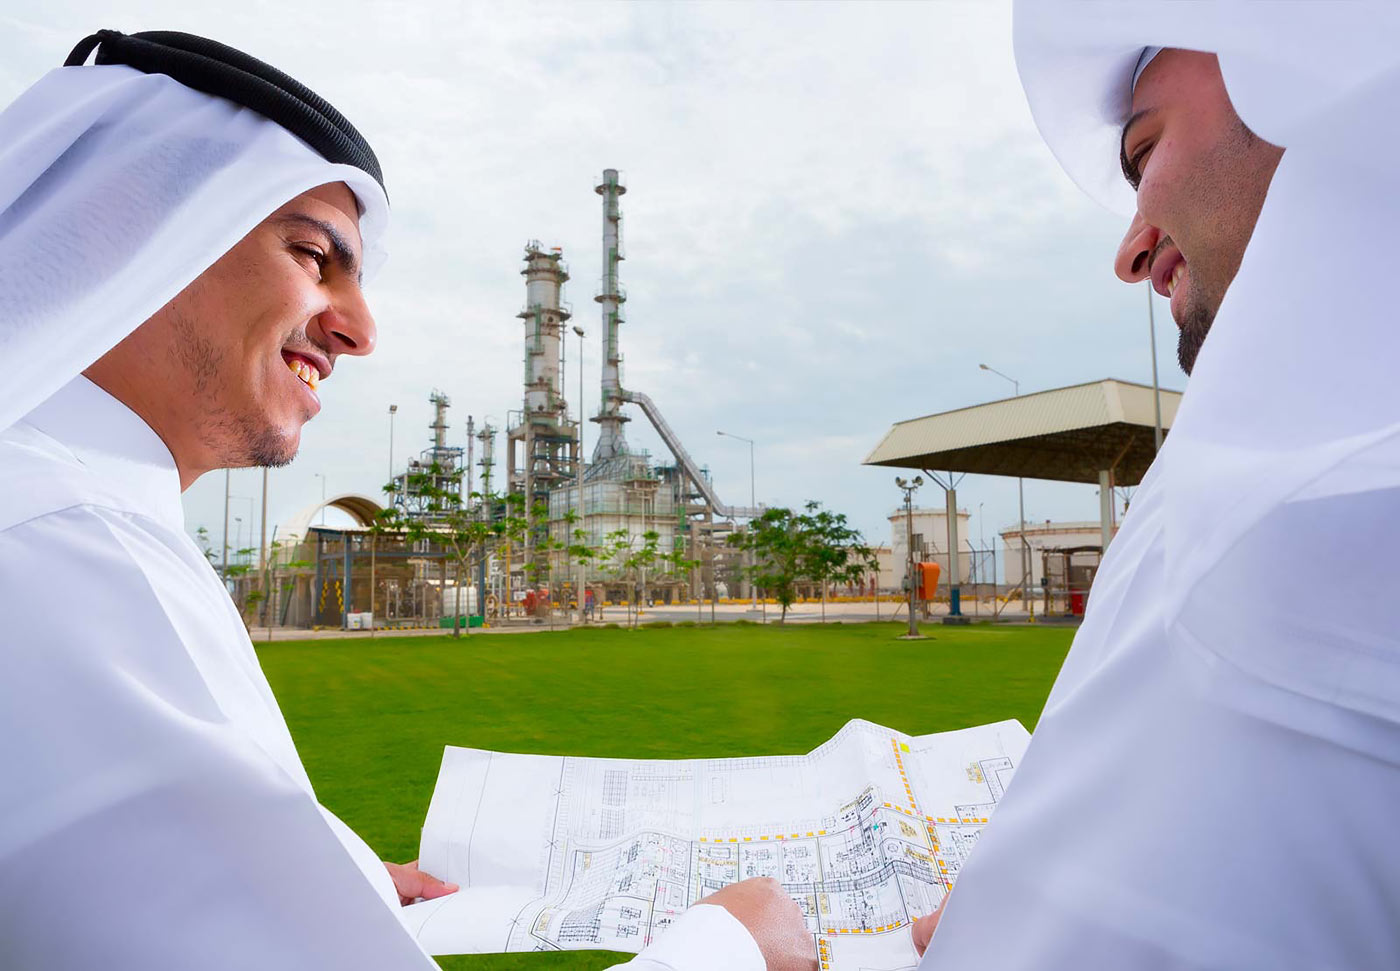 Oil company executives in the Middle East reviewing plant blueprints - corporate photography by Planet KB